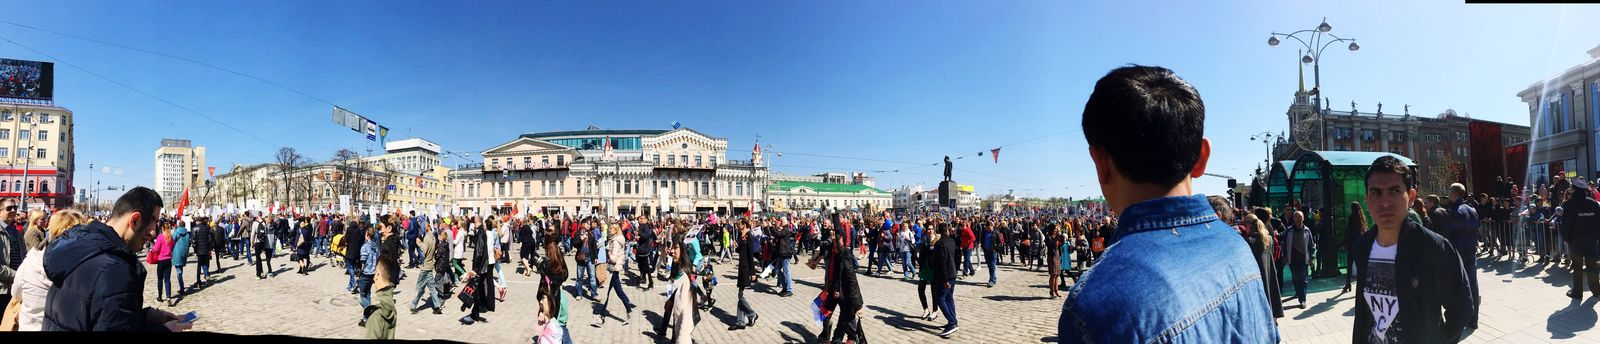 С Днём Победы!!! Large Group Of People Built Structure Building Exterior Architecture Real People Men Sky Outdoors Parade Day Blue Panoramic Crowd Clear Sky Women Military Parade City Adult People Adults Only